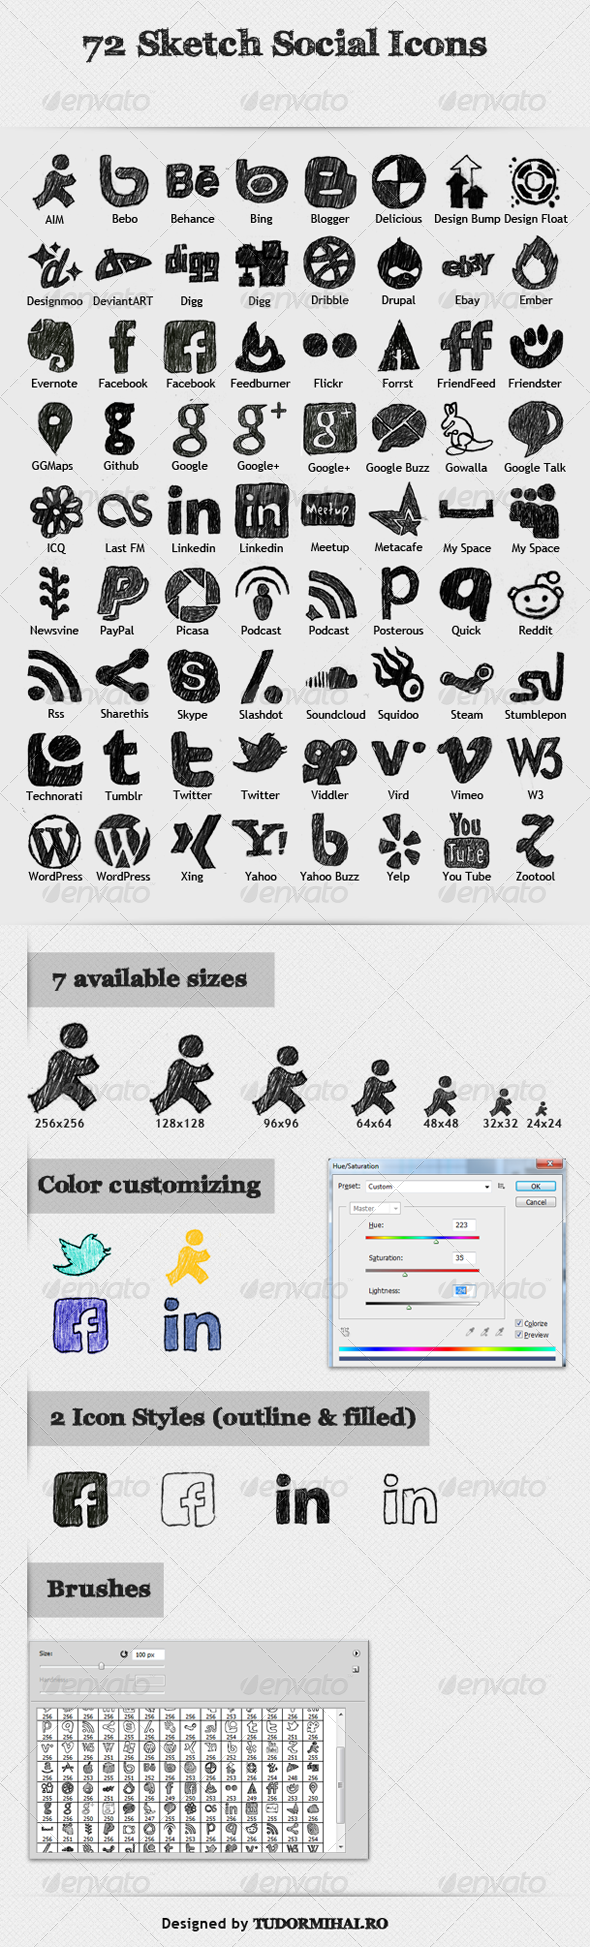 72 Sketch Social Icons  - Web Icons